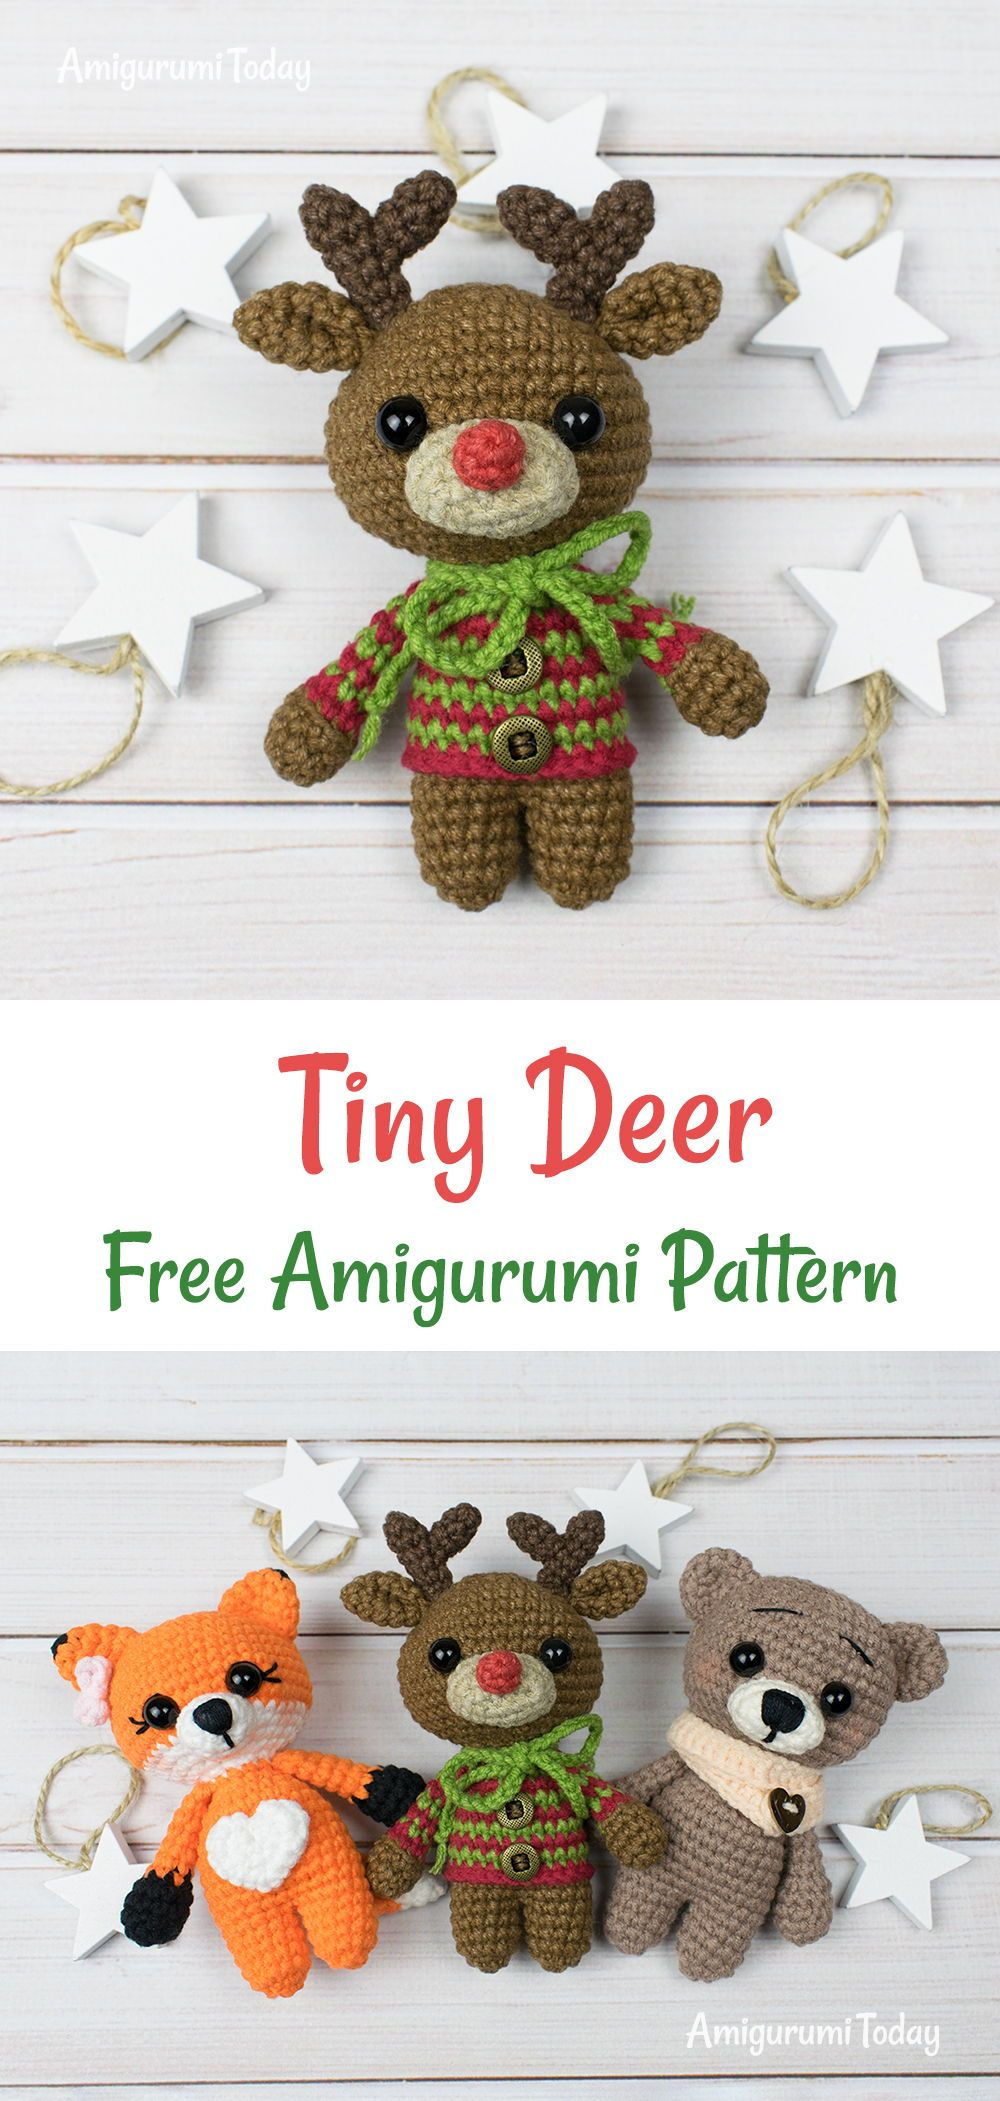 We all love wild cats, but they just... - Amigurumi Today - Free ... | 2101x1000